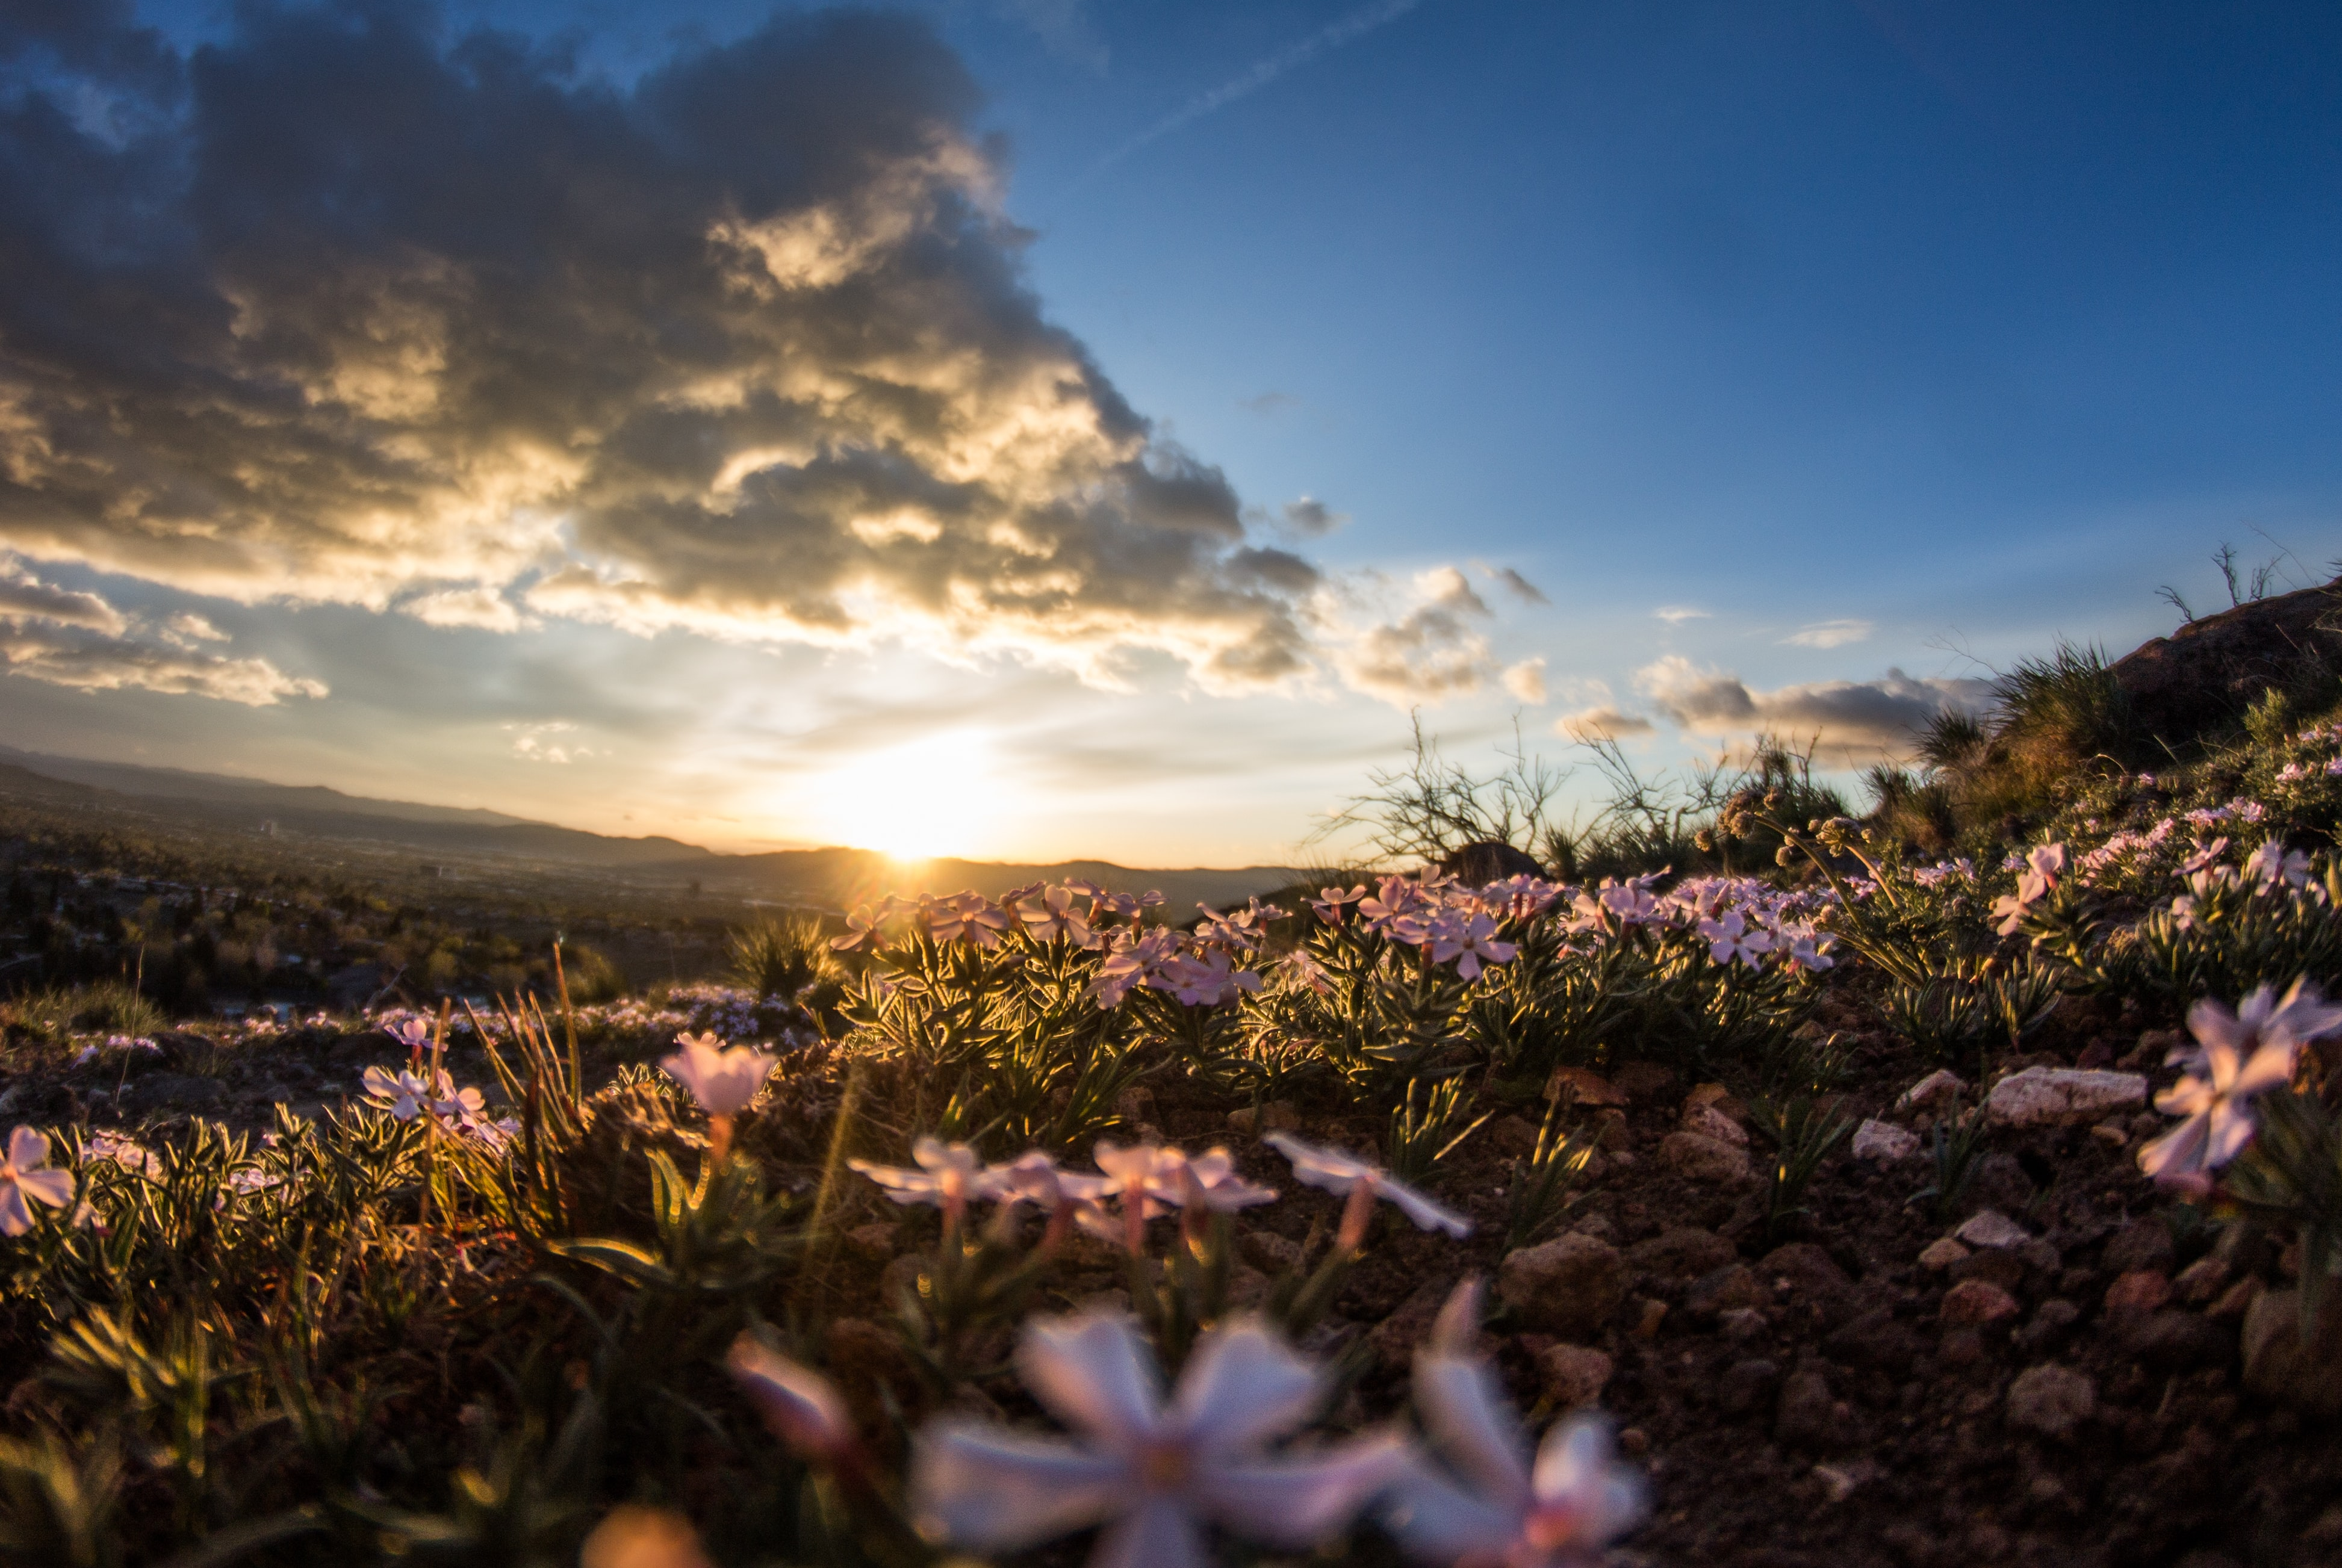 A rocky meadow with white flowers during sunrise